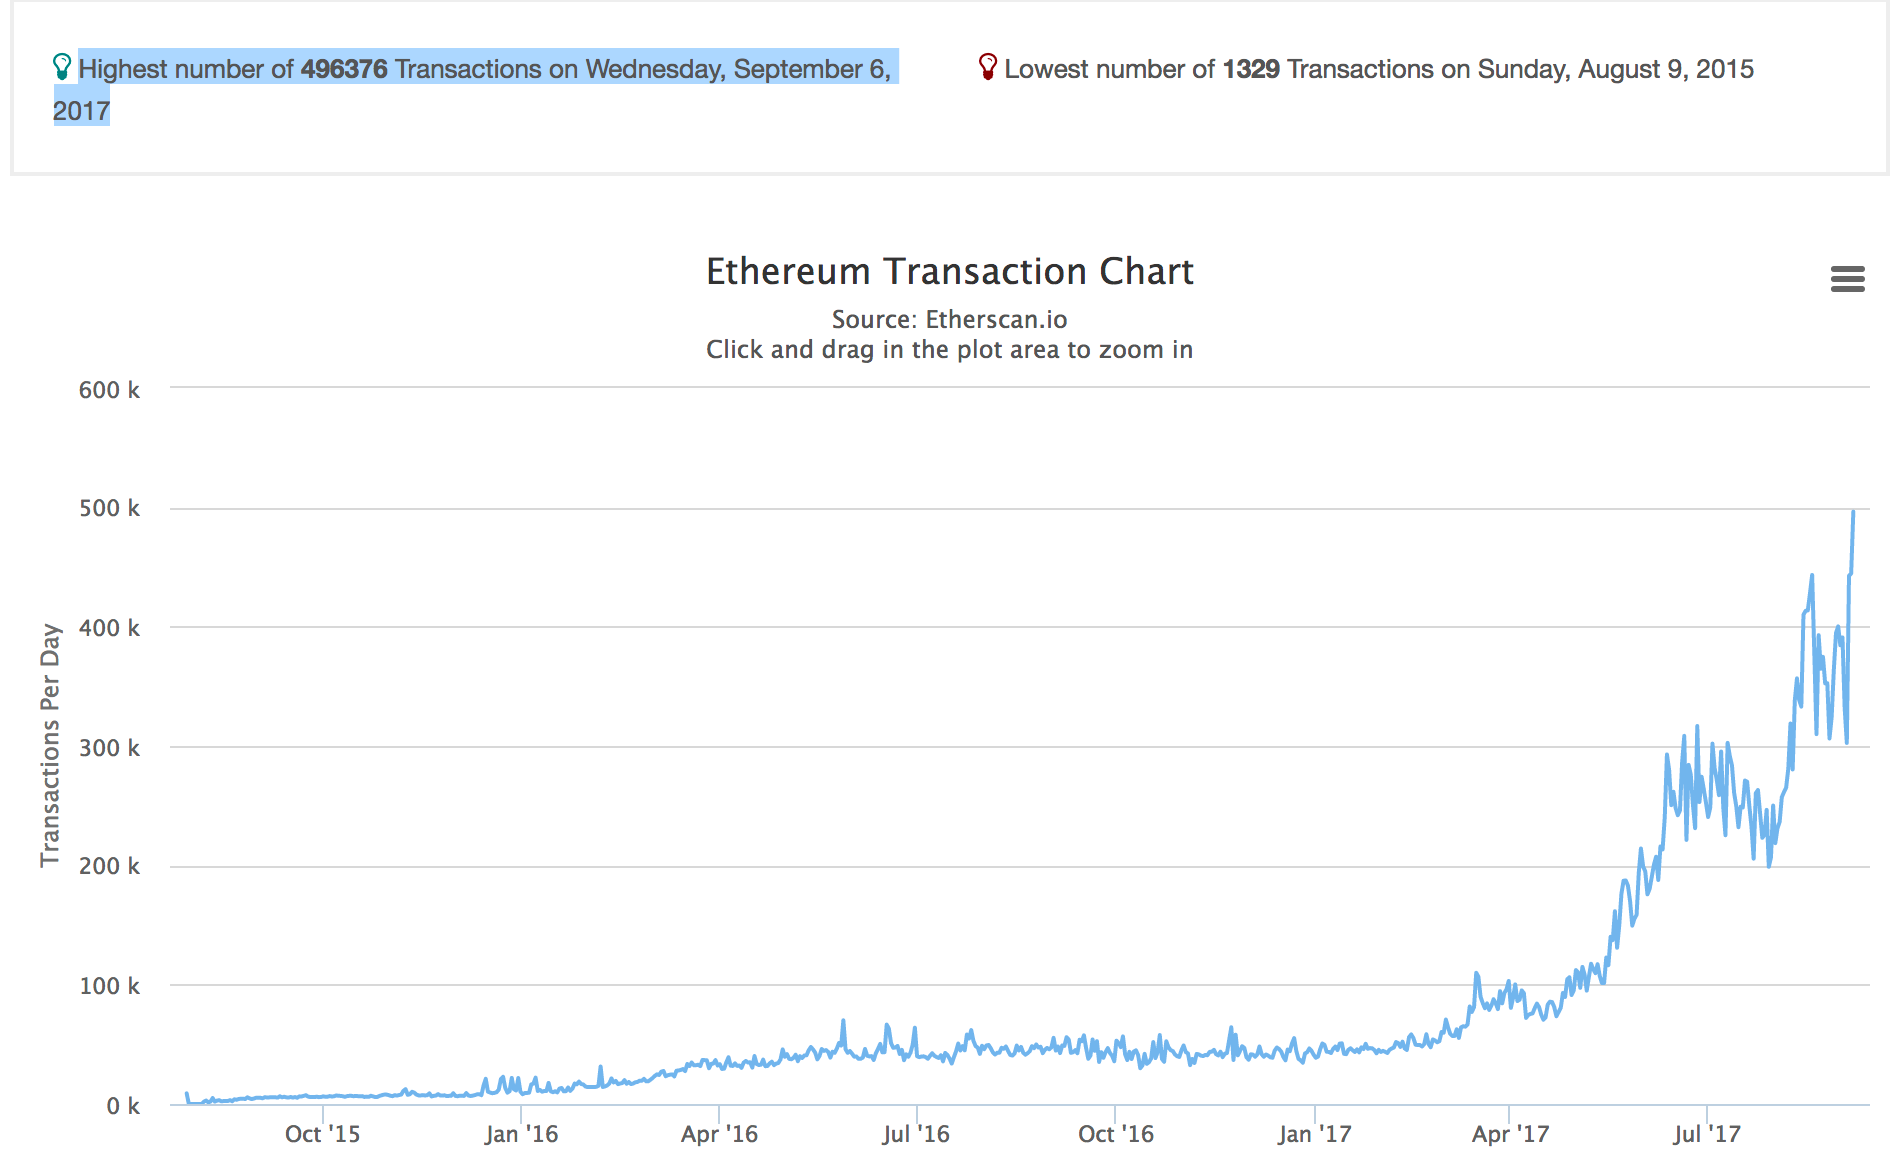 ETH_Transactions_090617.png